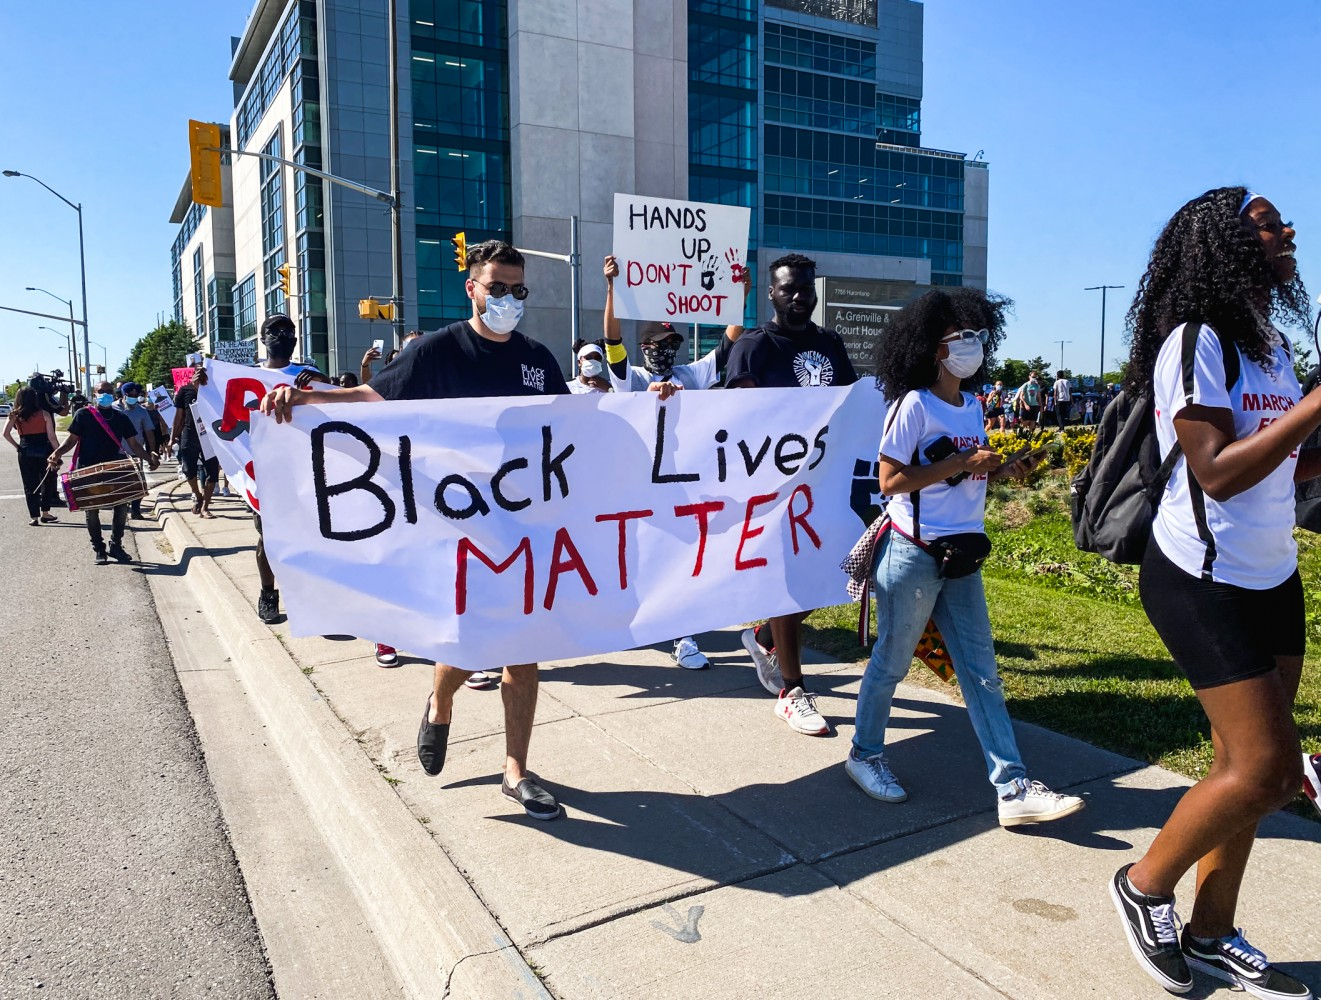 PDSB and its controversial director drop legal threat against Black advocates as new provincial supervisor prepared to order the retreat